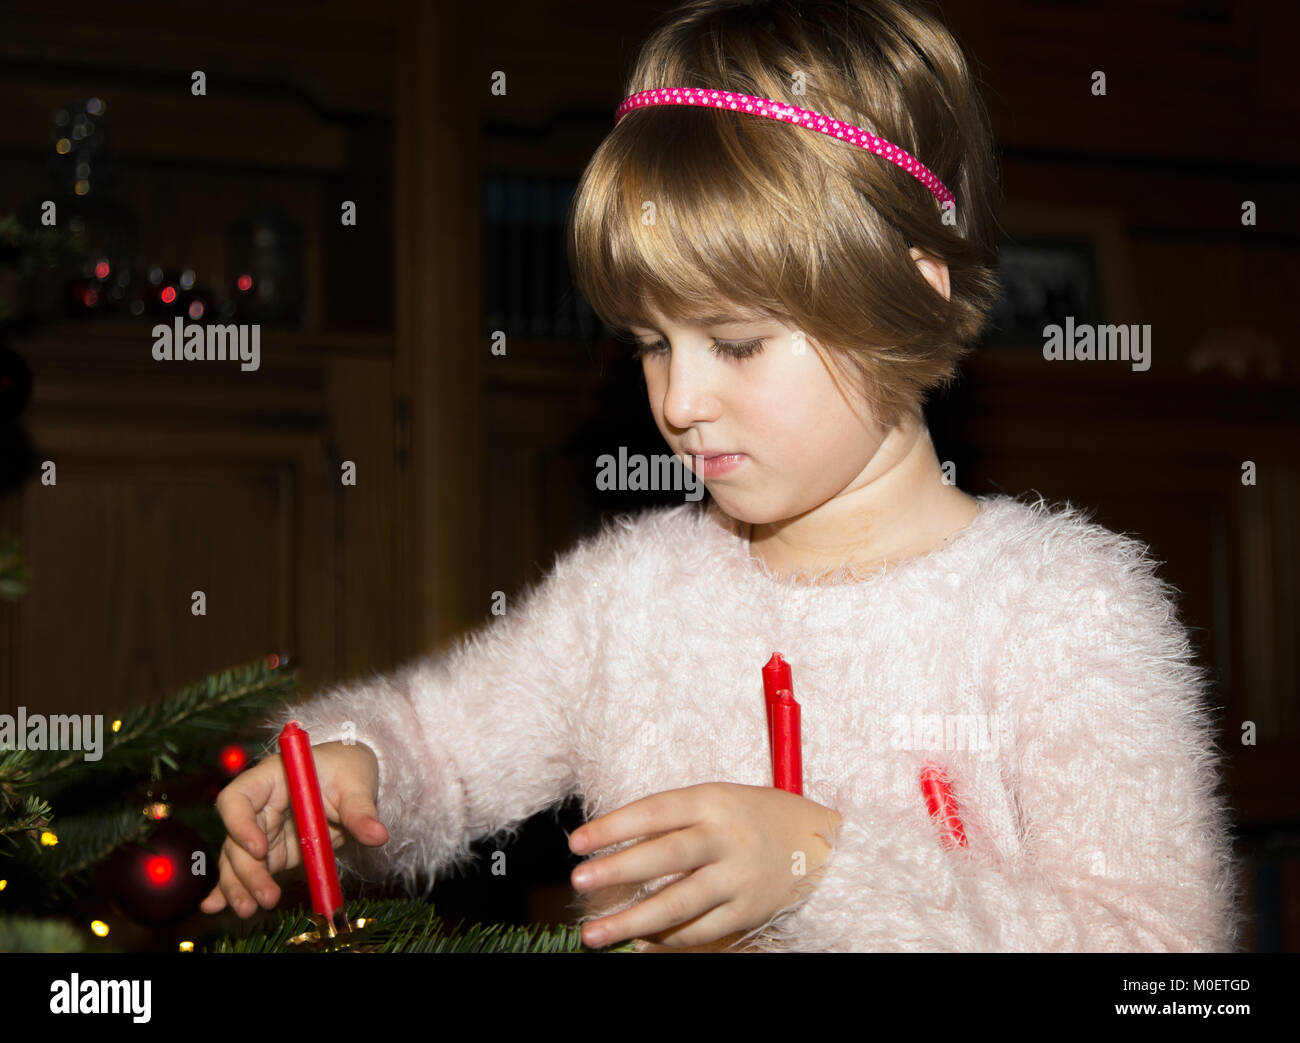 Decorating a Christmas tree - Stock Image